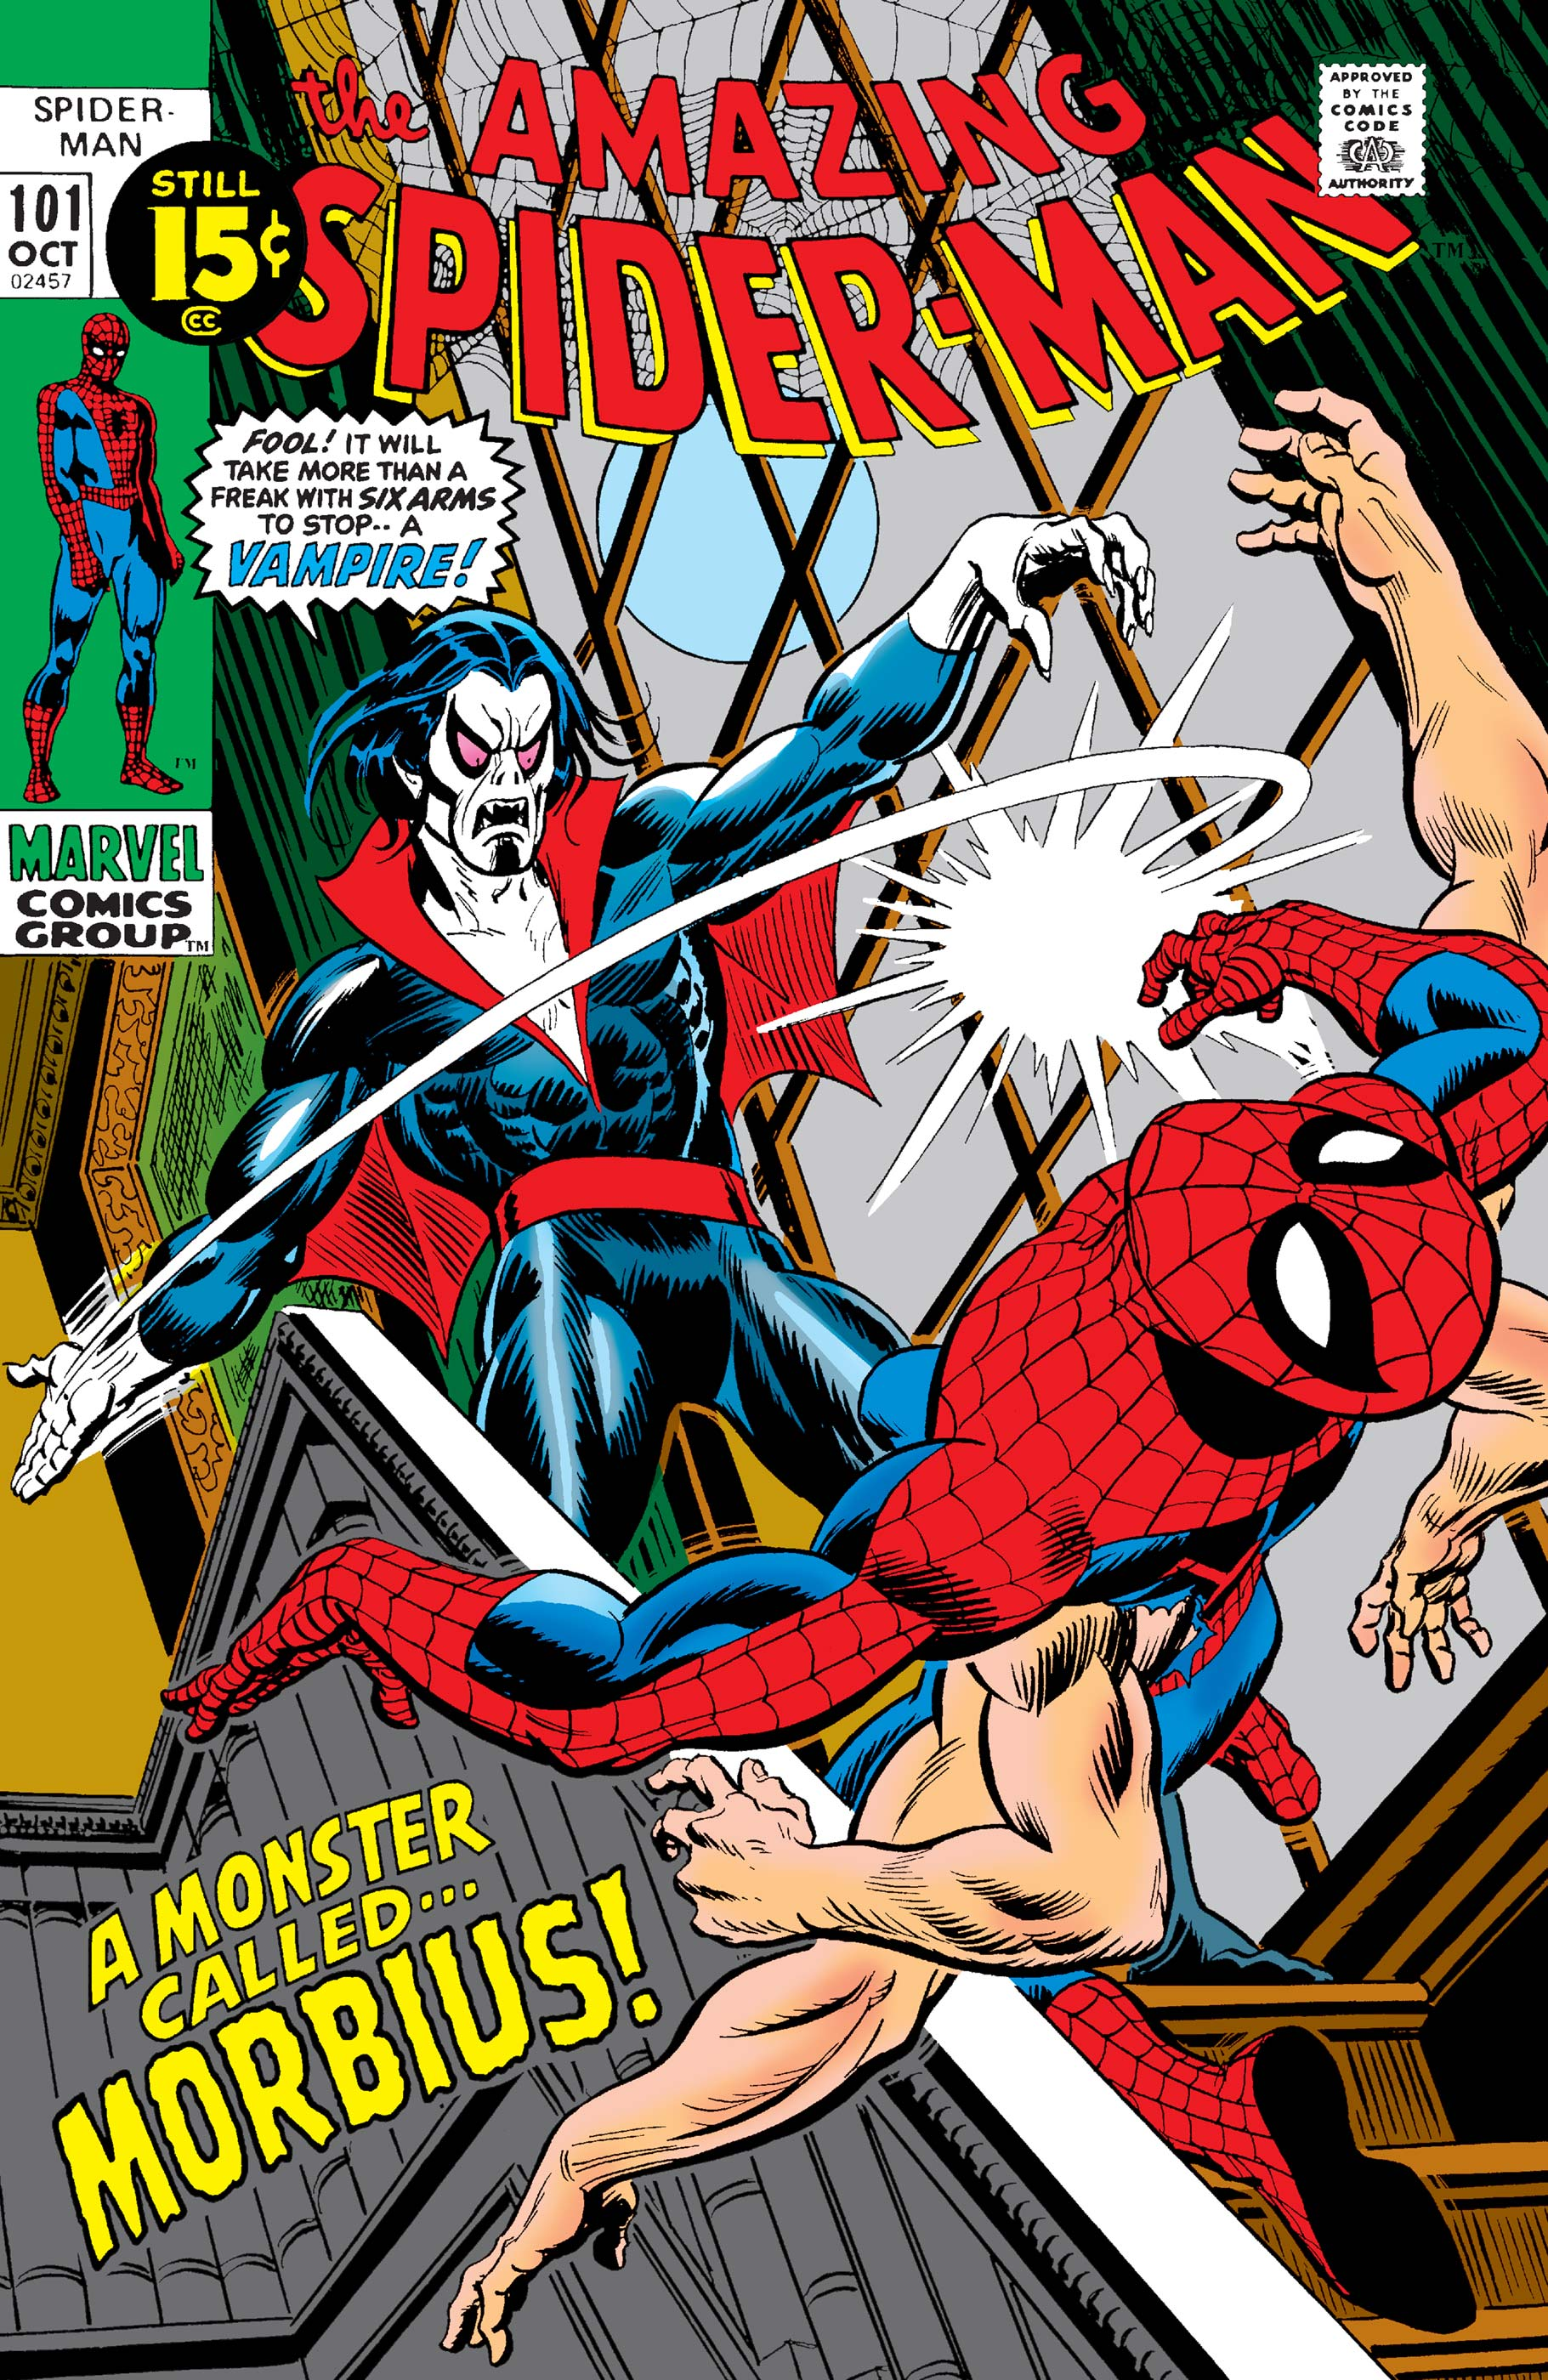 The Amazing Spider-Man (1963) #101